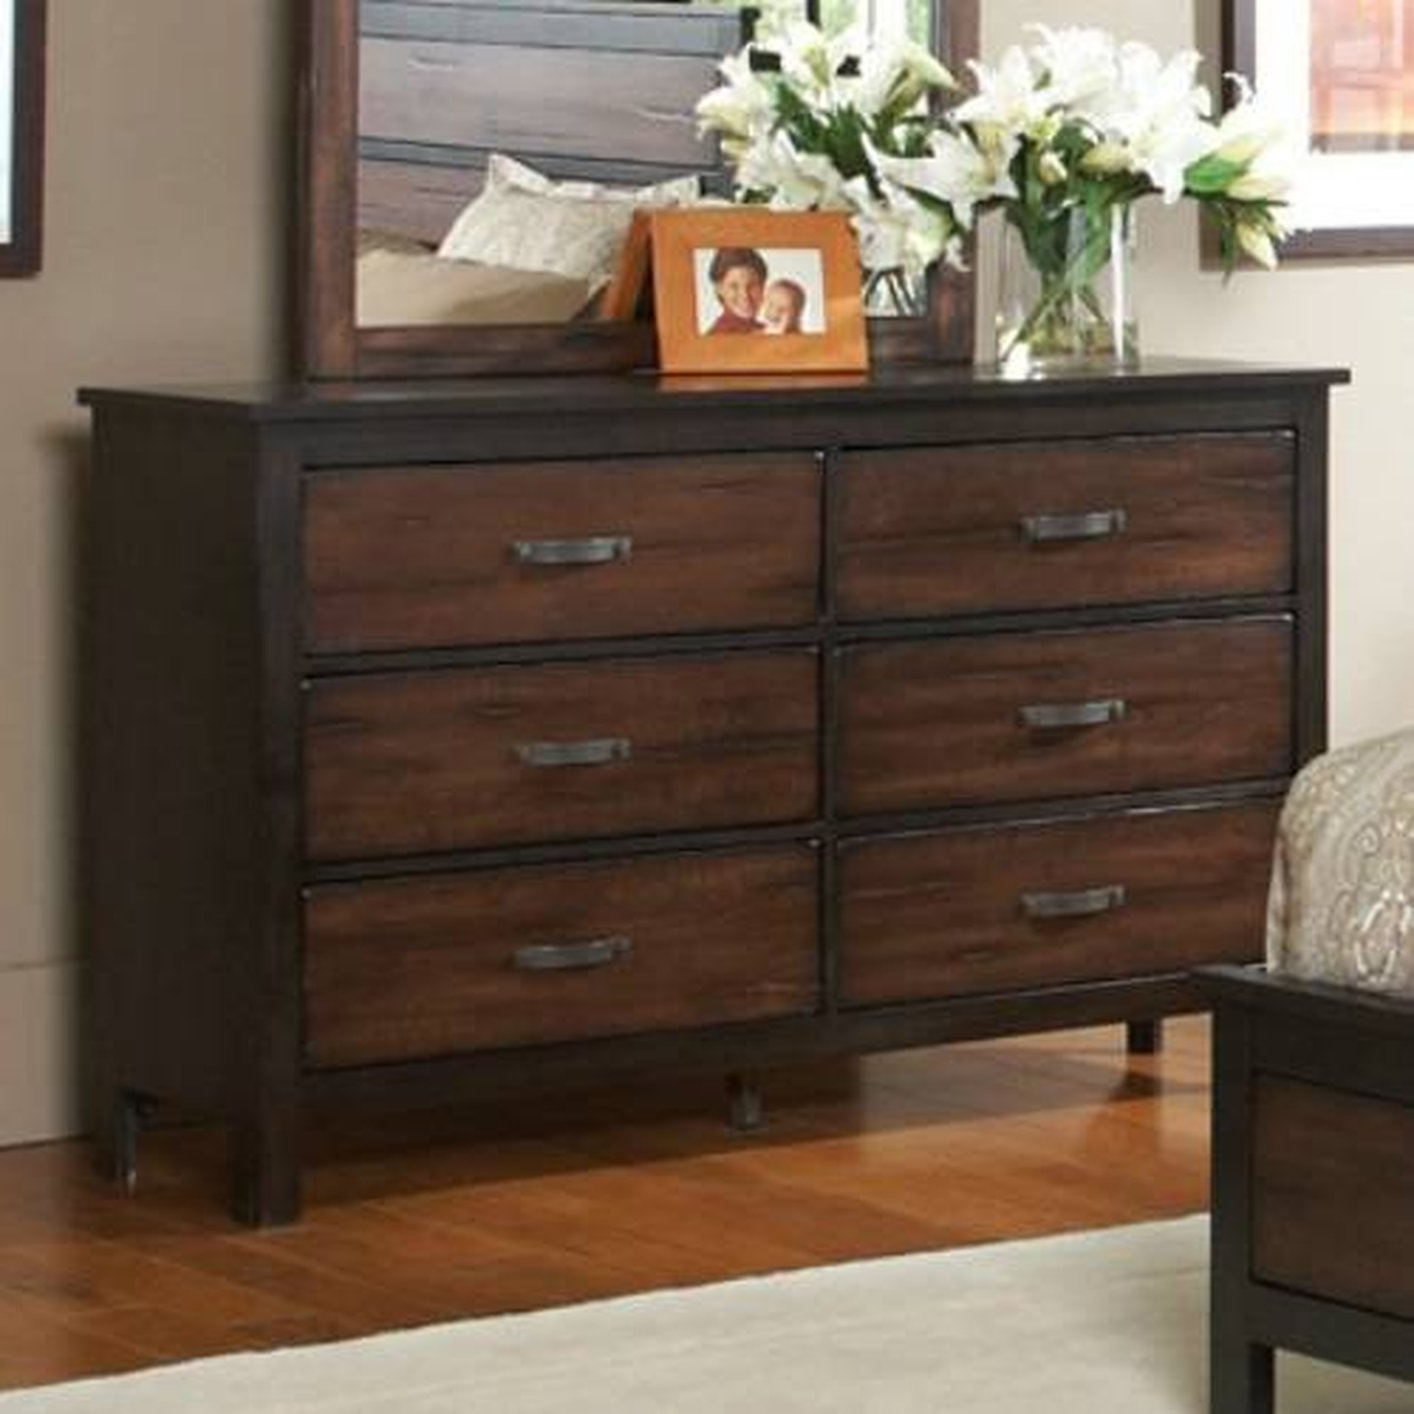 dark brown wood dresser Brown Wood Dresser   Steal A Sofa Furniture Outlet Los Angeles CA dark brown wood dresser